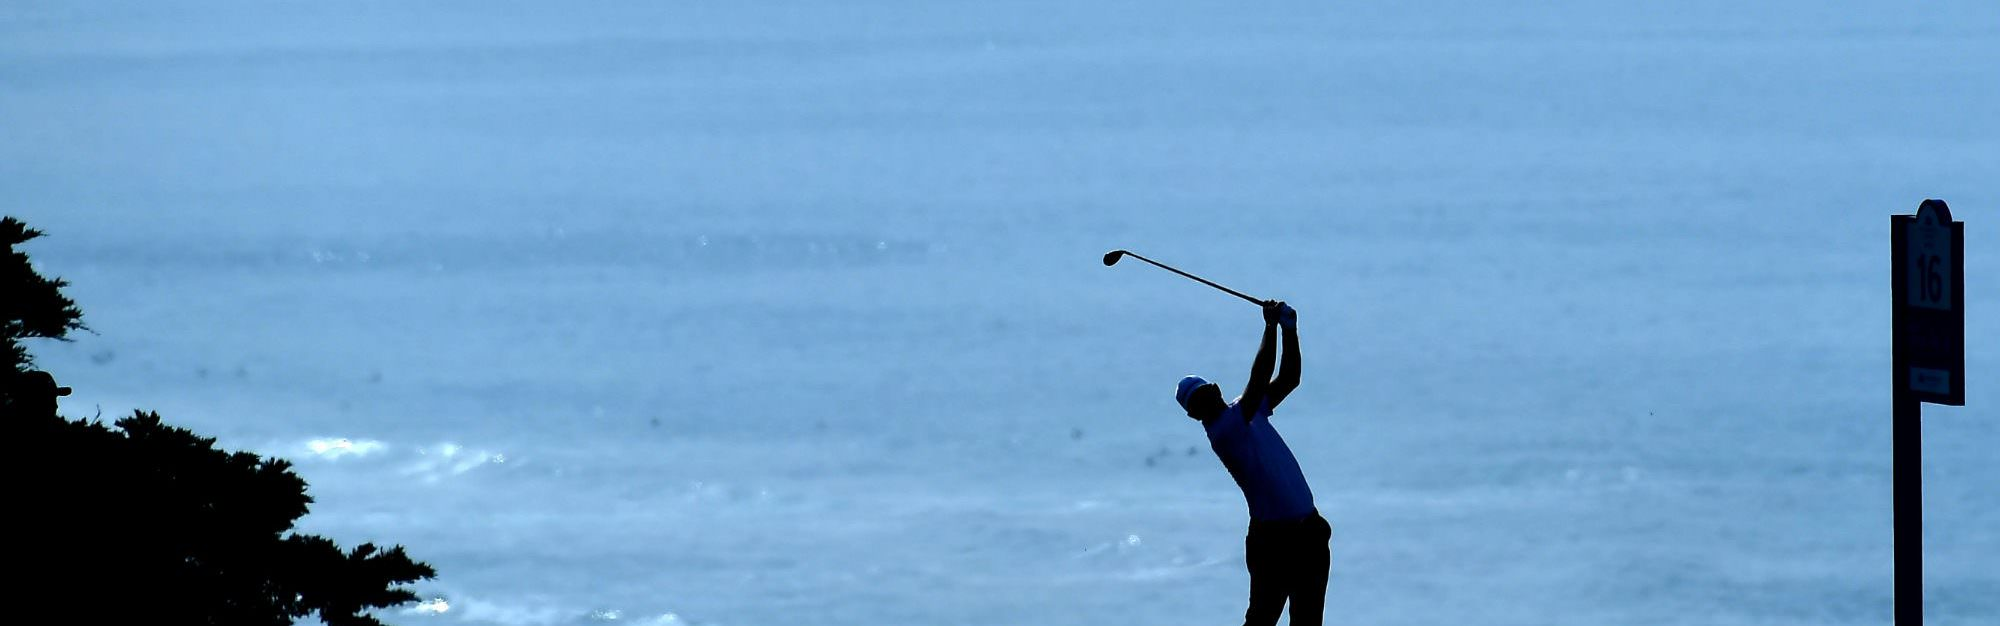 Don't fall into the trap of searching for the perfect golf swing